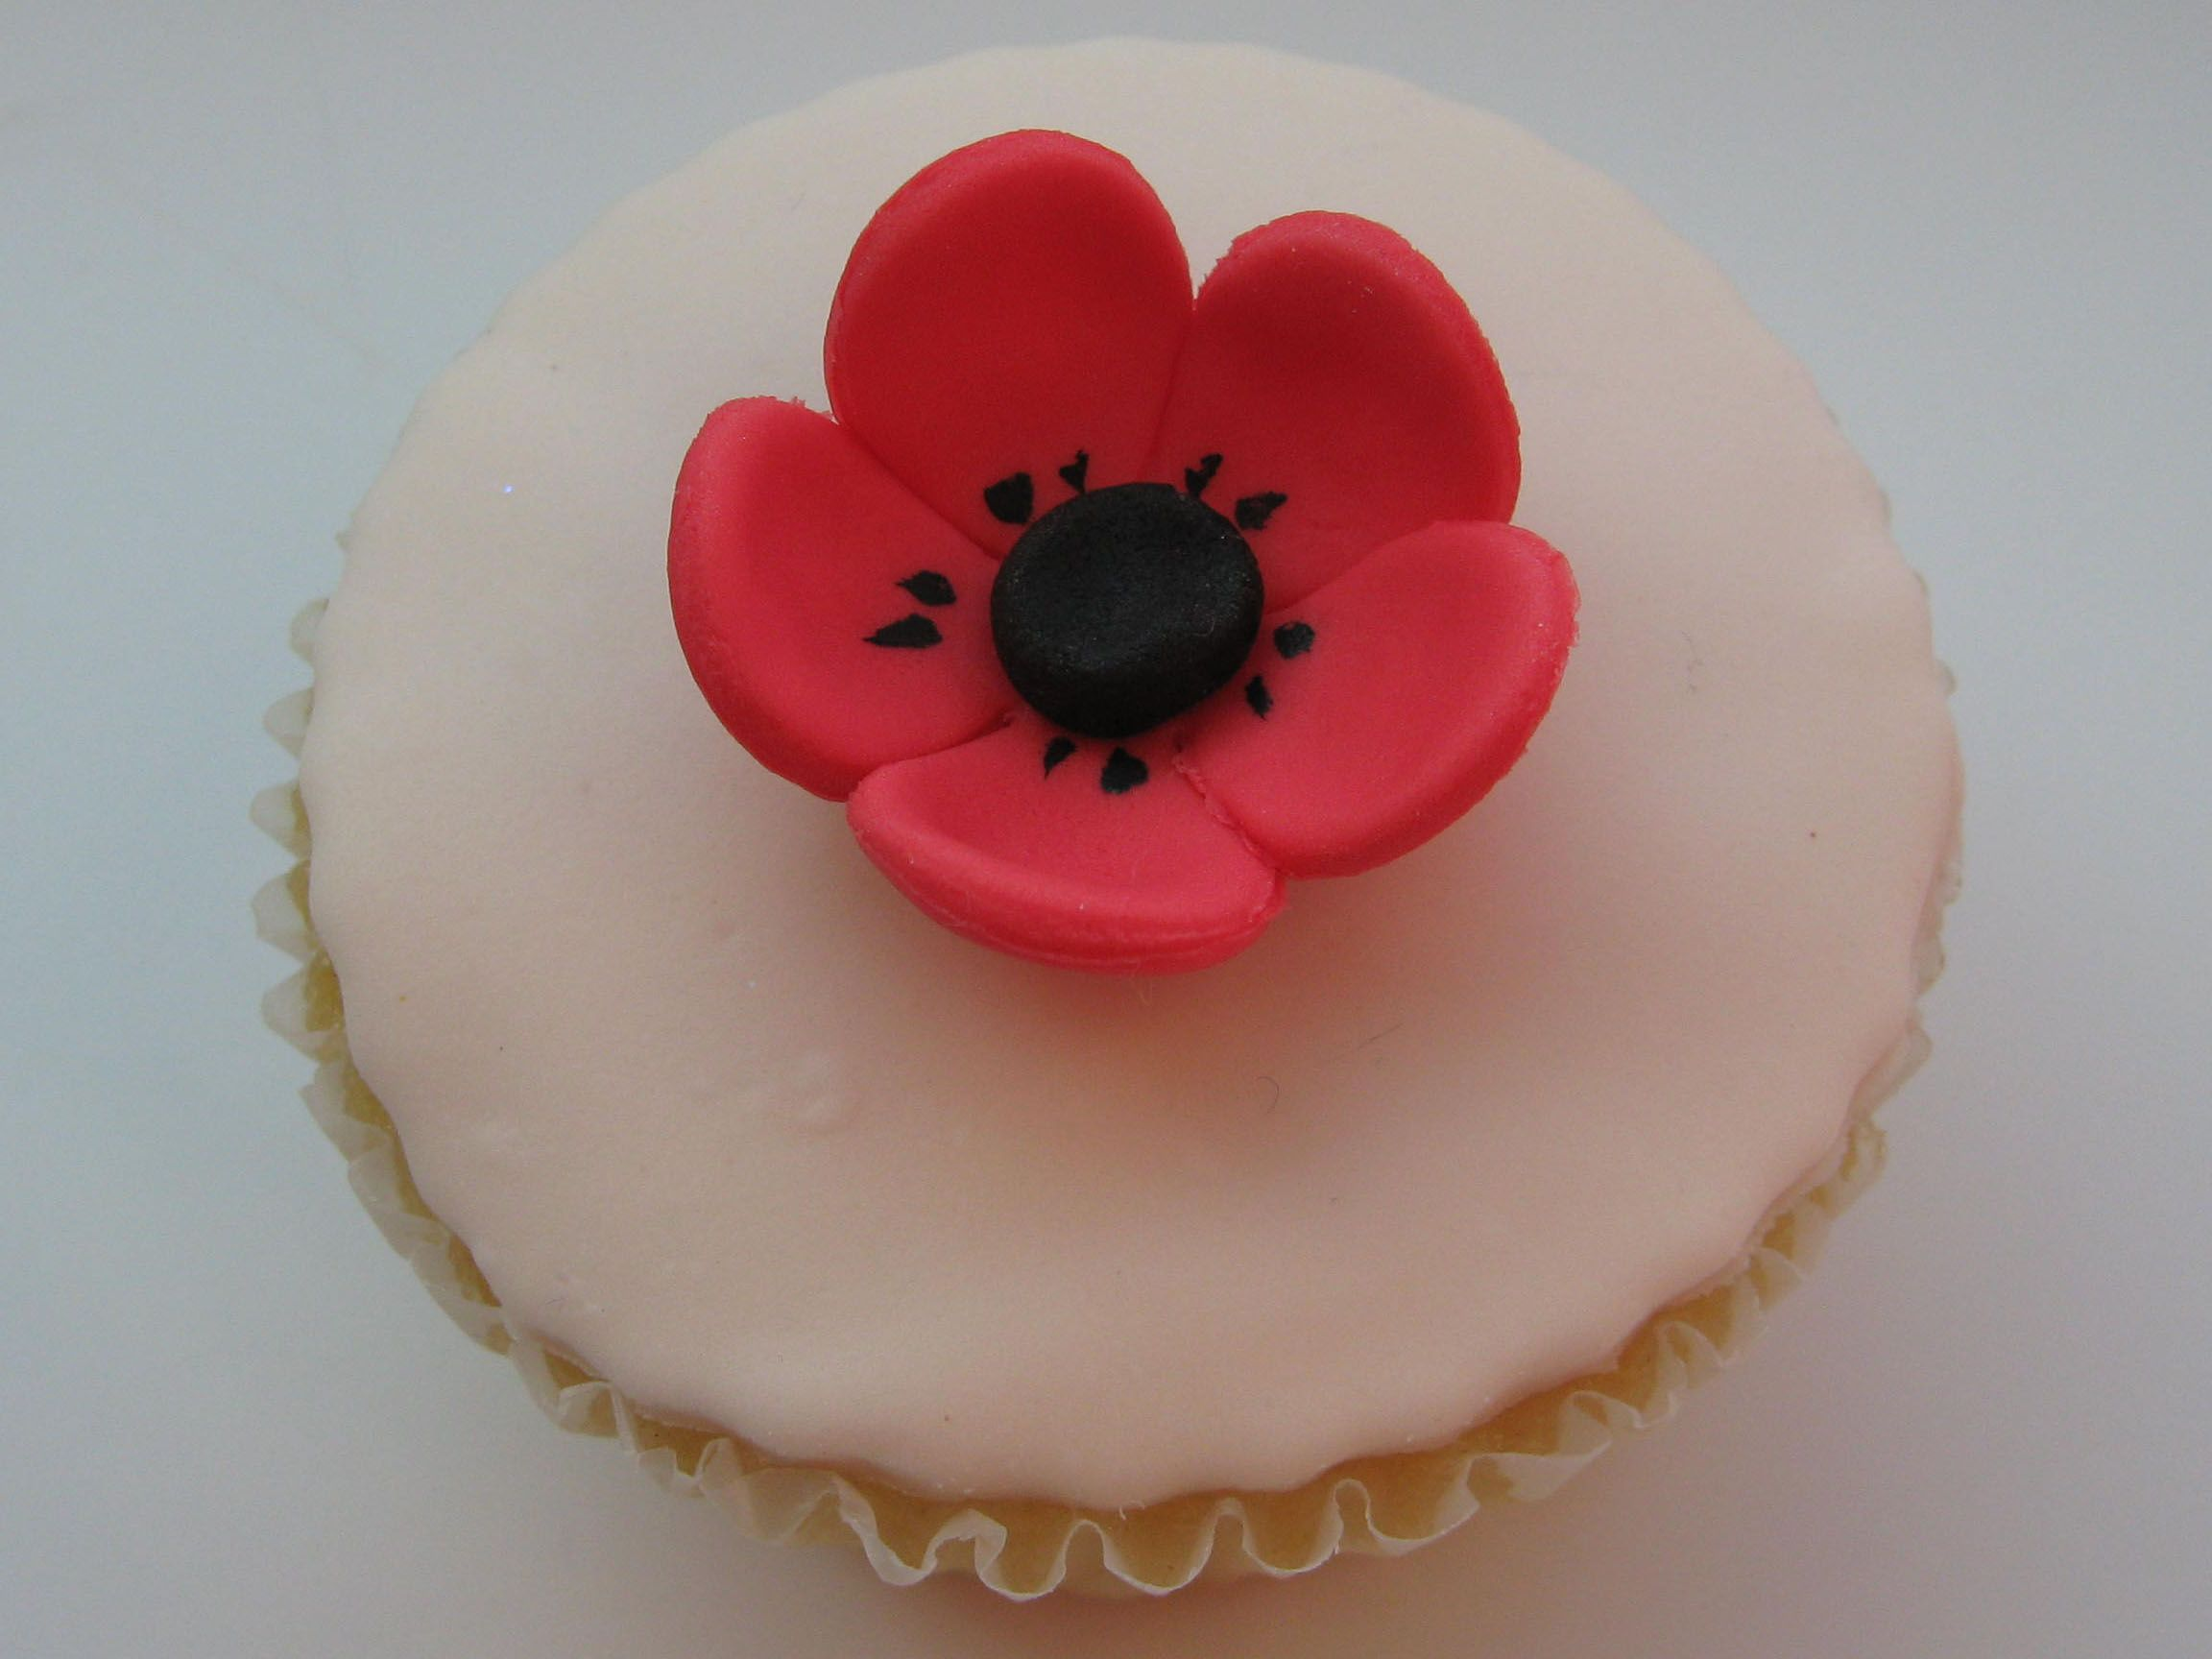 12 Sugar Icing Red Poppy Flower Cake Cupcake Decorations Pink